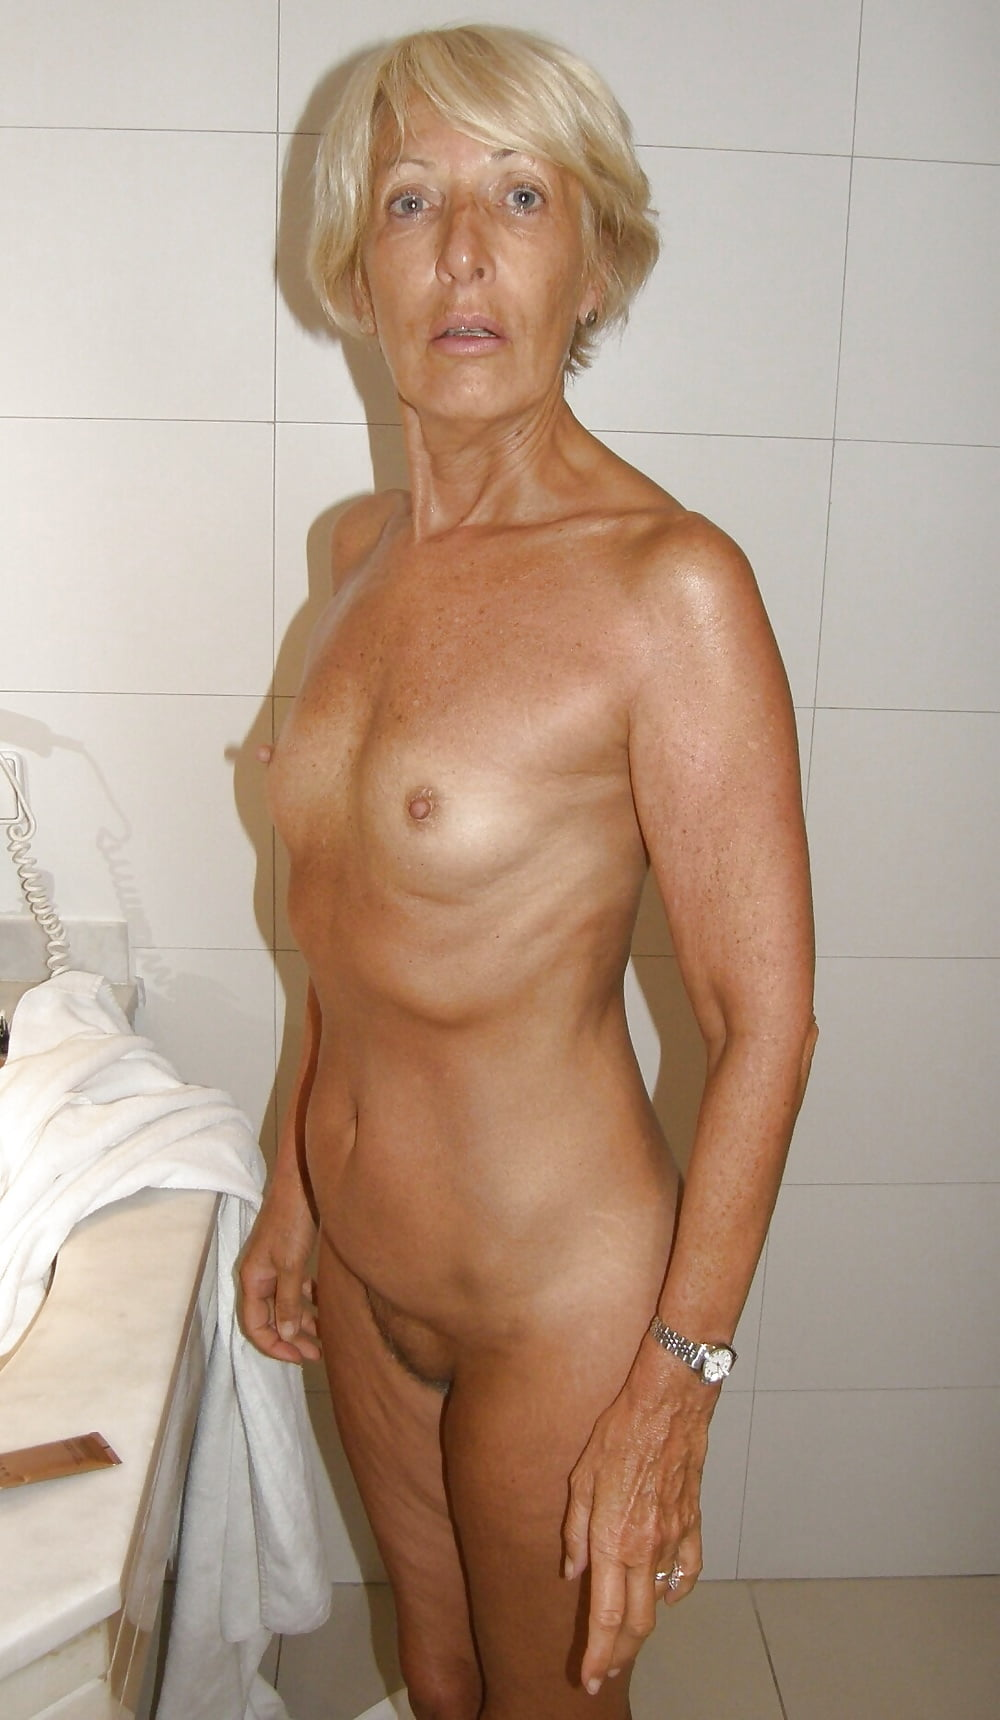 hot-amateur-seniors-nude-high-clarity-yong-boy-fucking-aunty-pictures